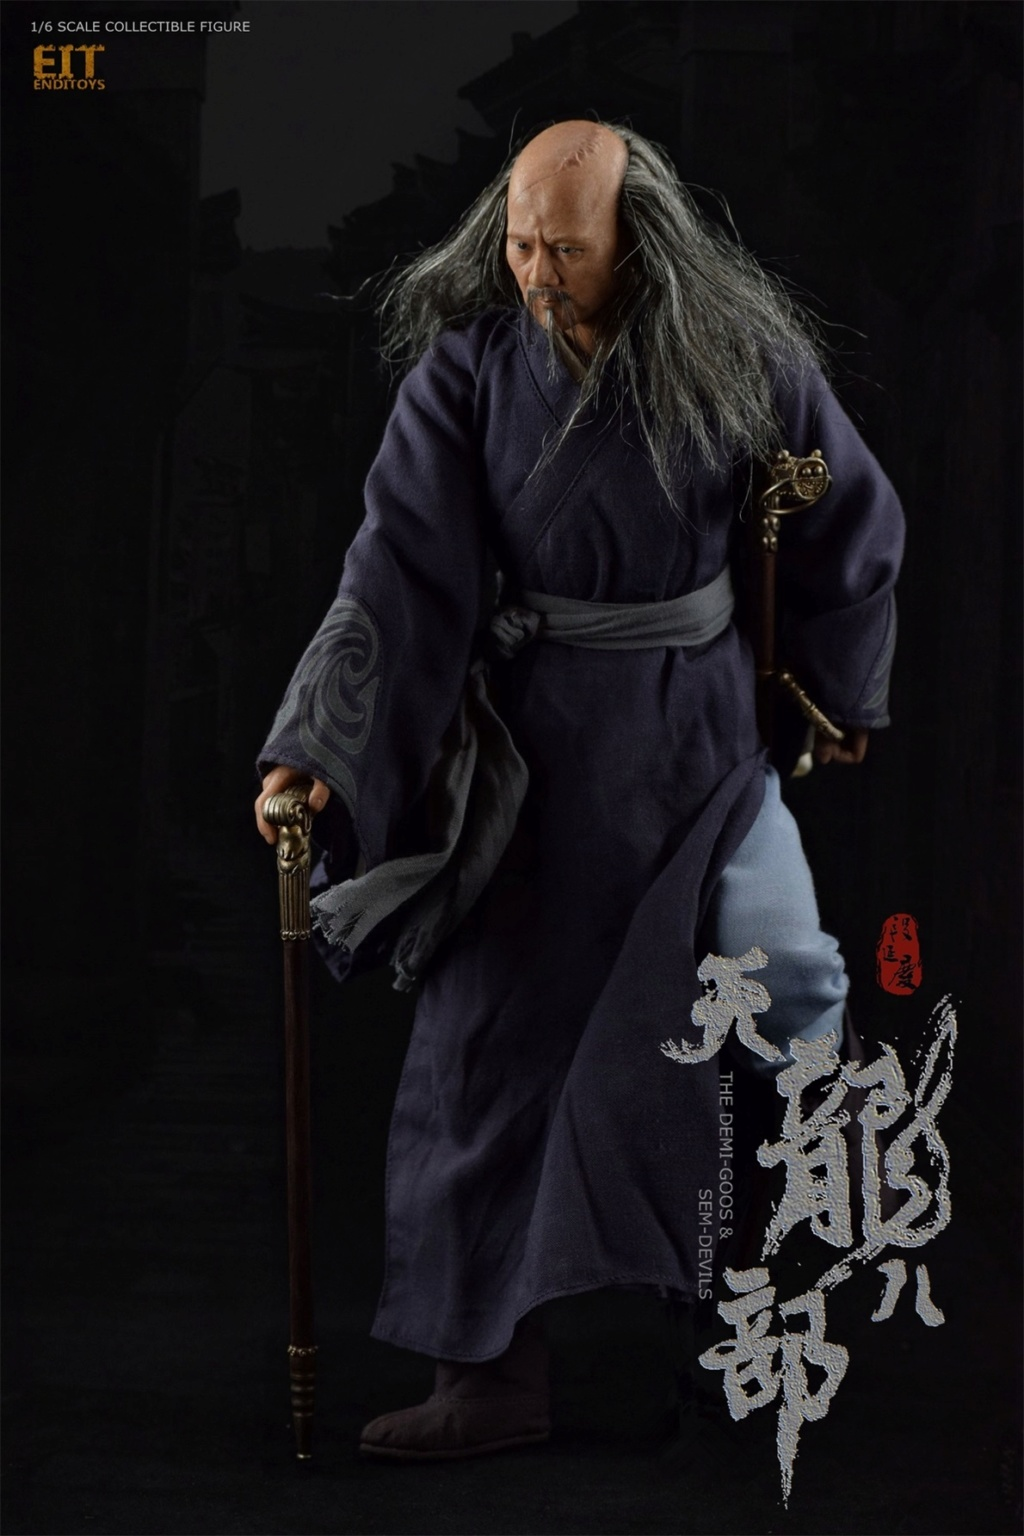 EndIToys - NEW PRODUCT: [EIT] End I Toys New: 1/6 Tianlong Babu - Duan Yanqing Movable (EIT1809) 388